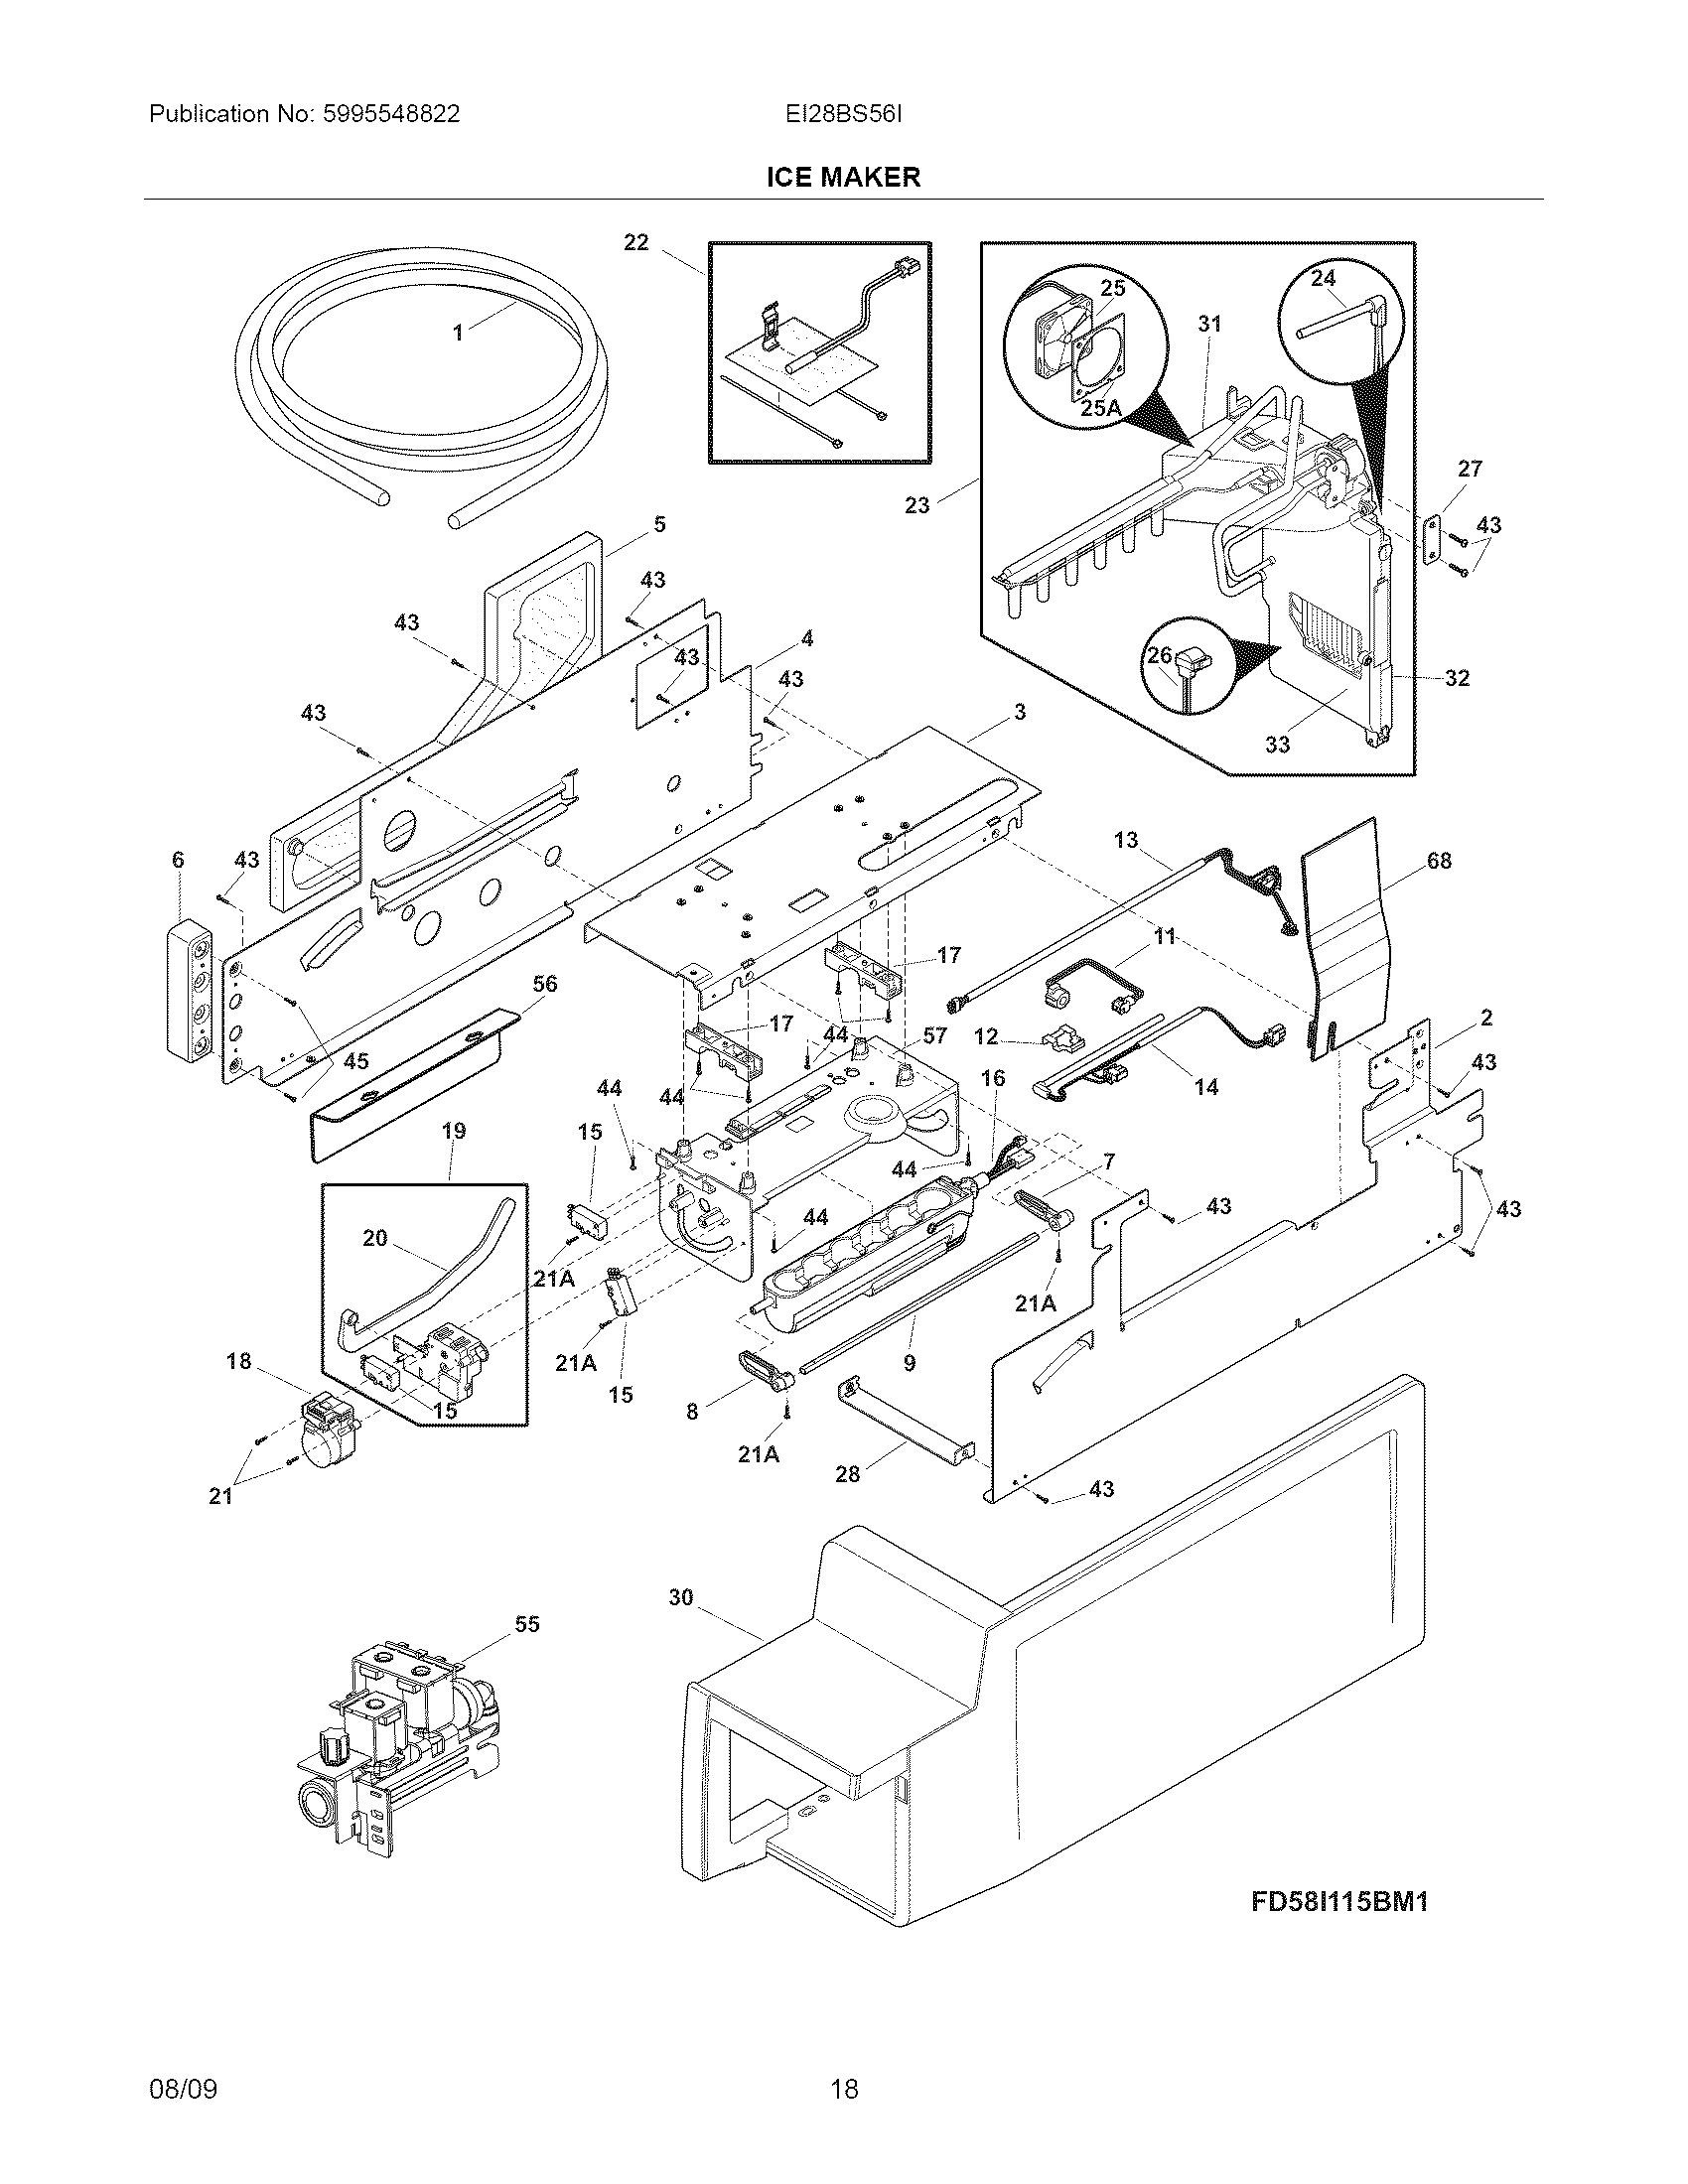 ICE MAKER Diagram & Parts List for Model ei28bs56is0